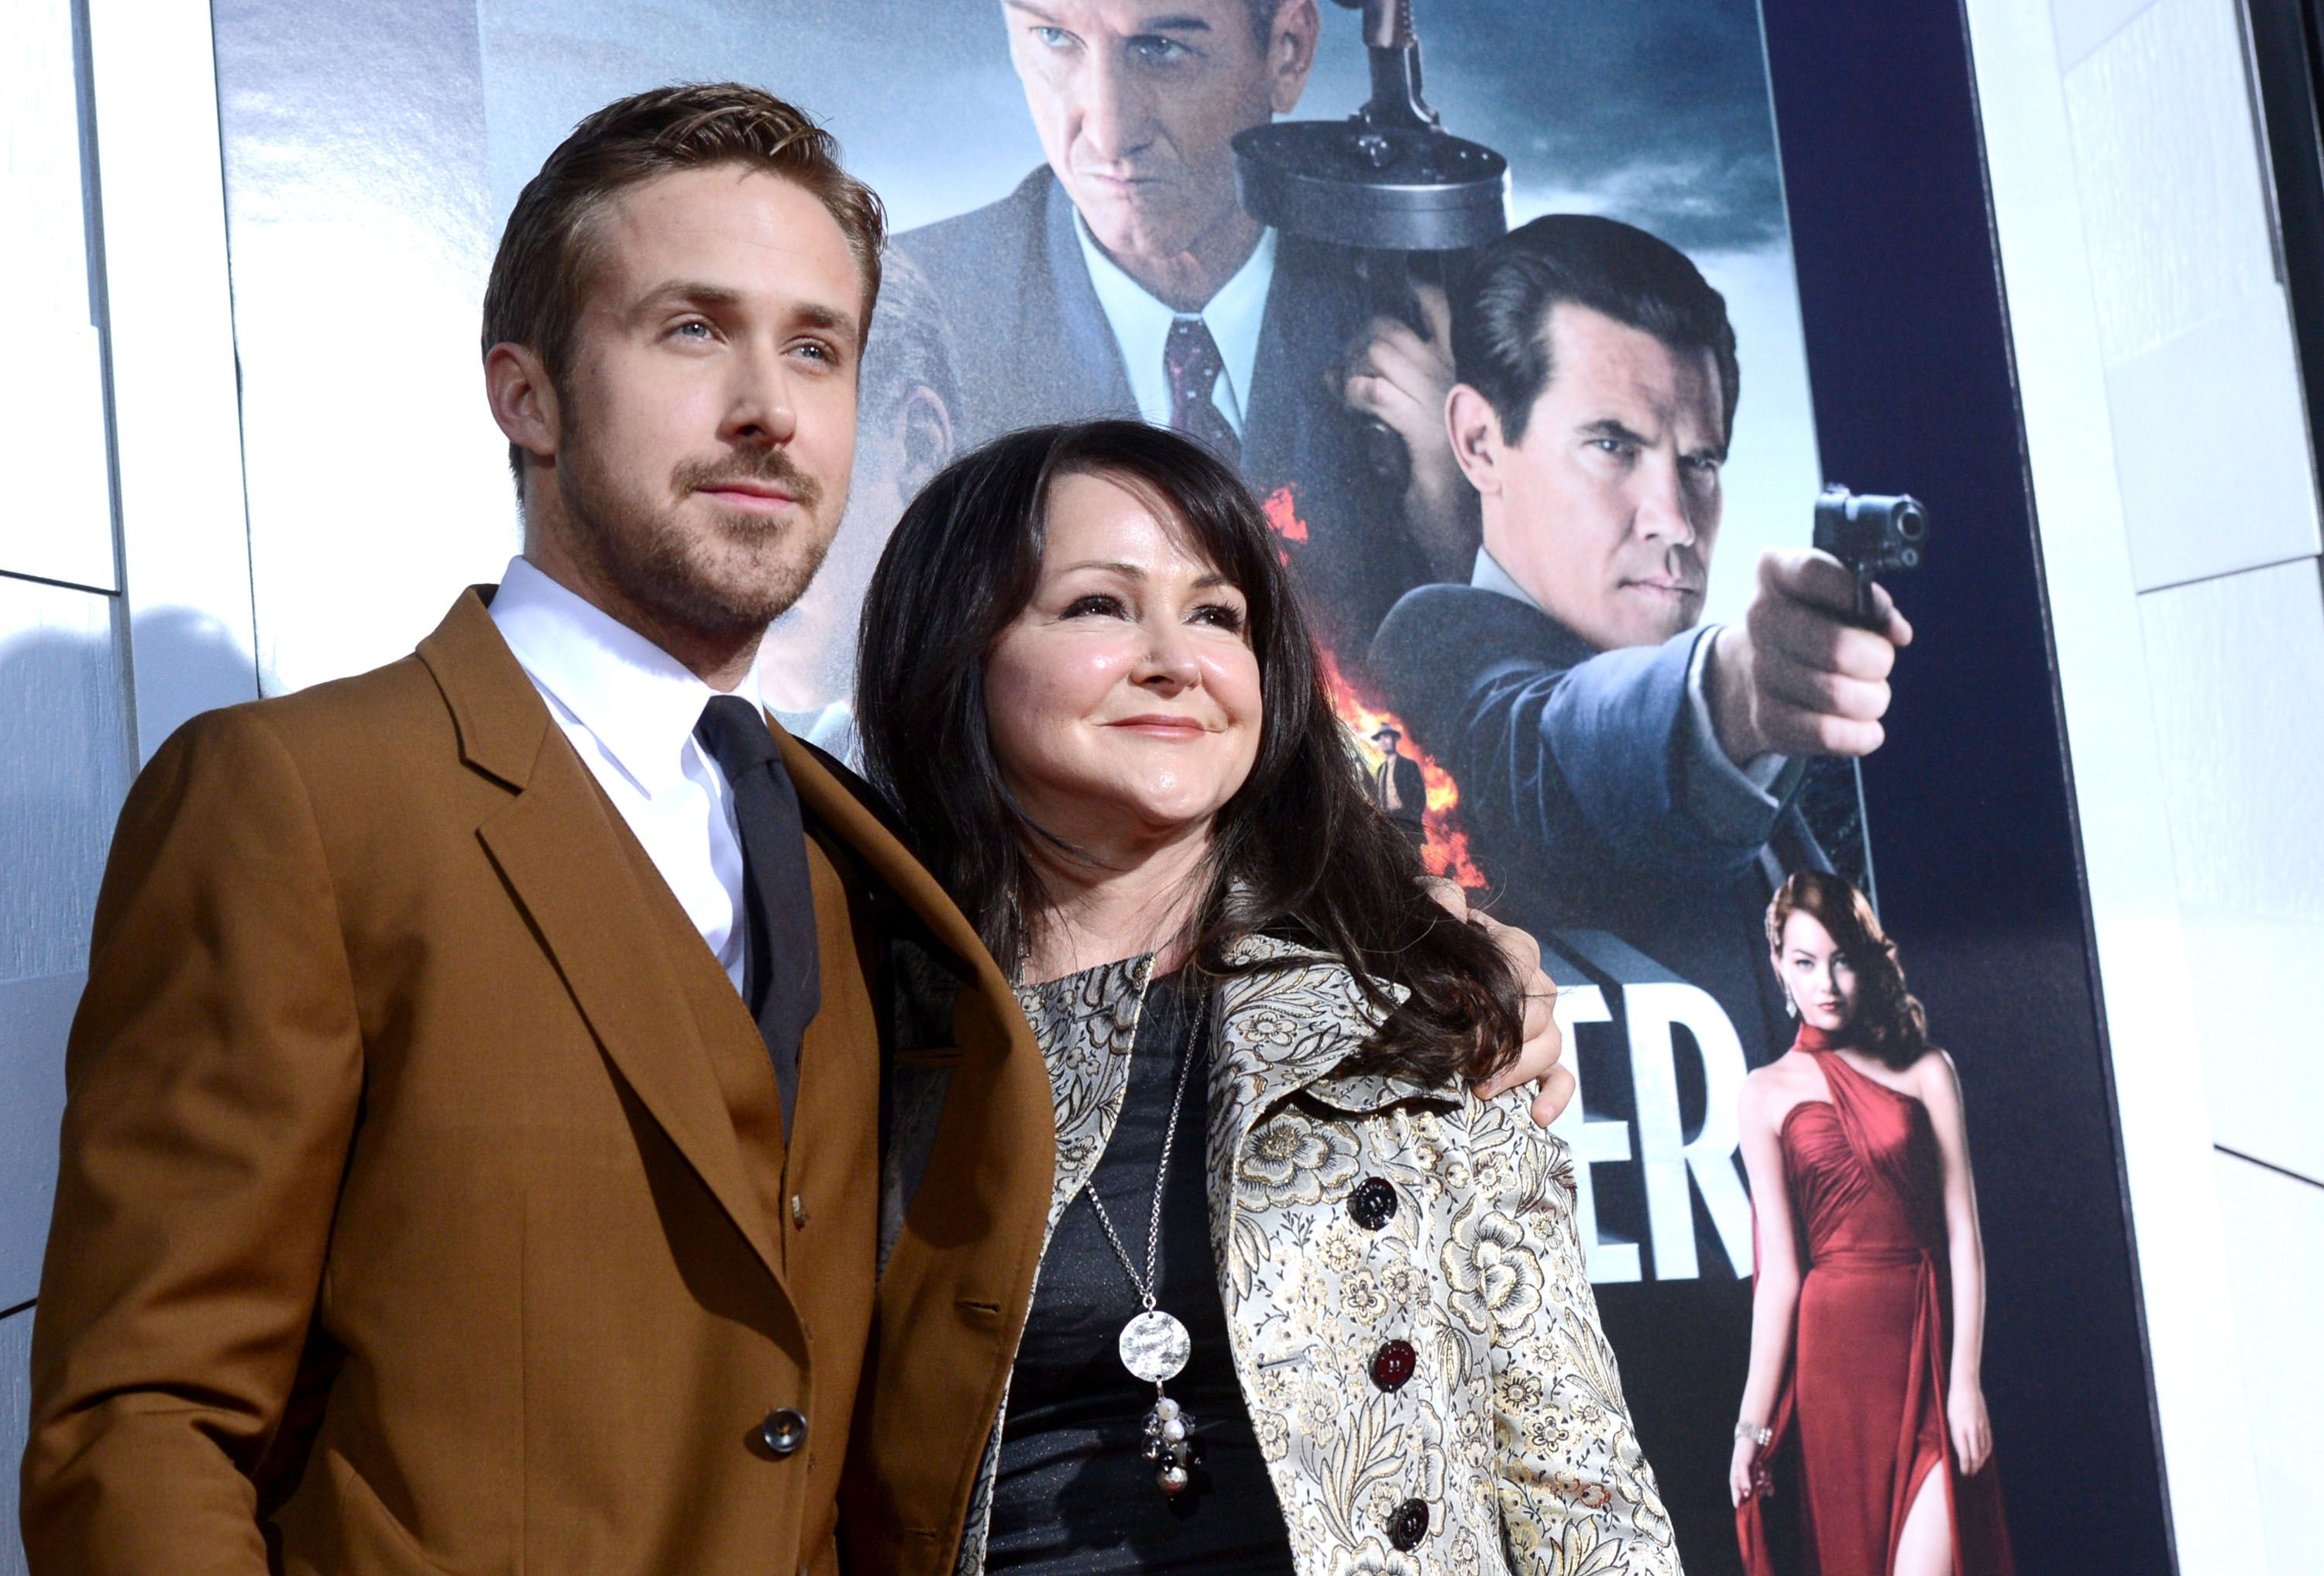 Gosling's mom deserves special thanks. (Getty Images) -- Gosling's mom deserves special thanks. (Getty Images)